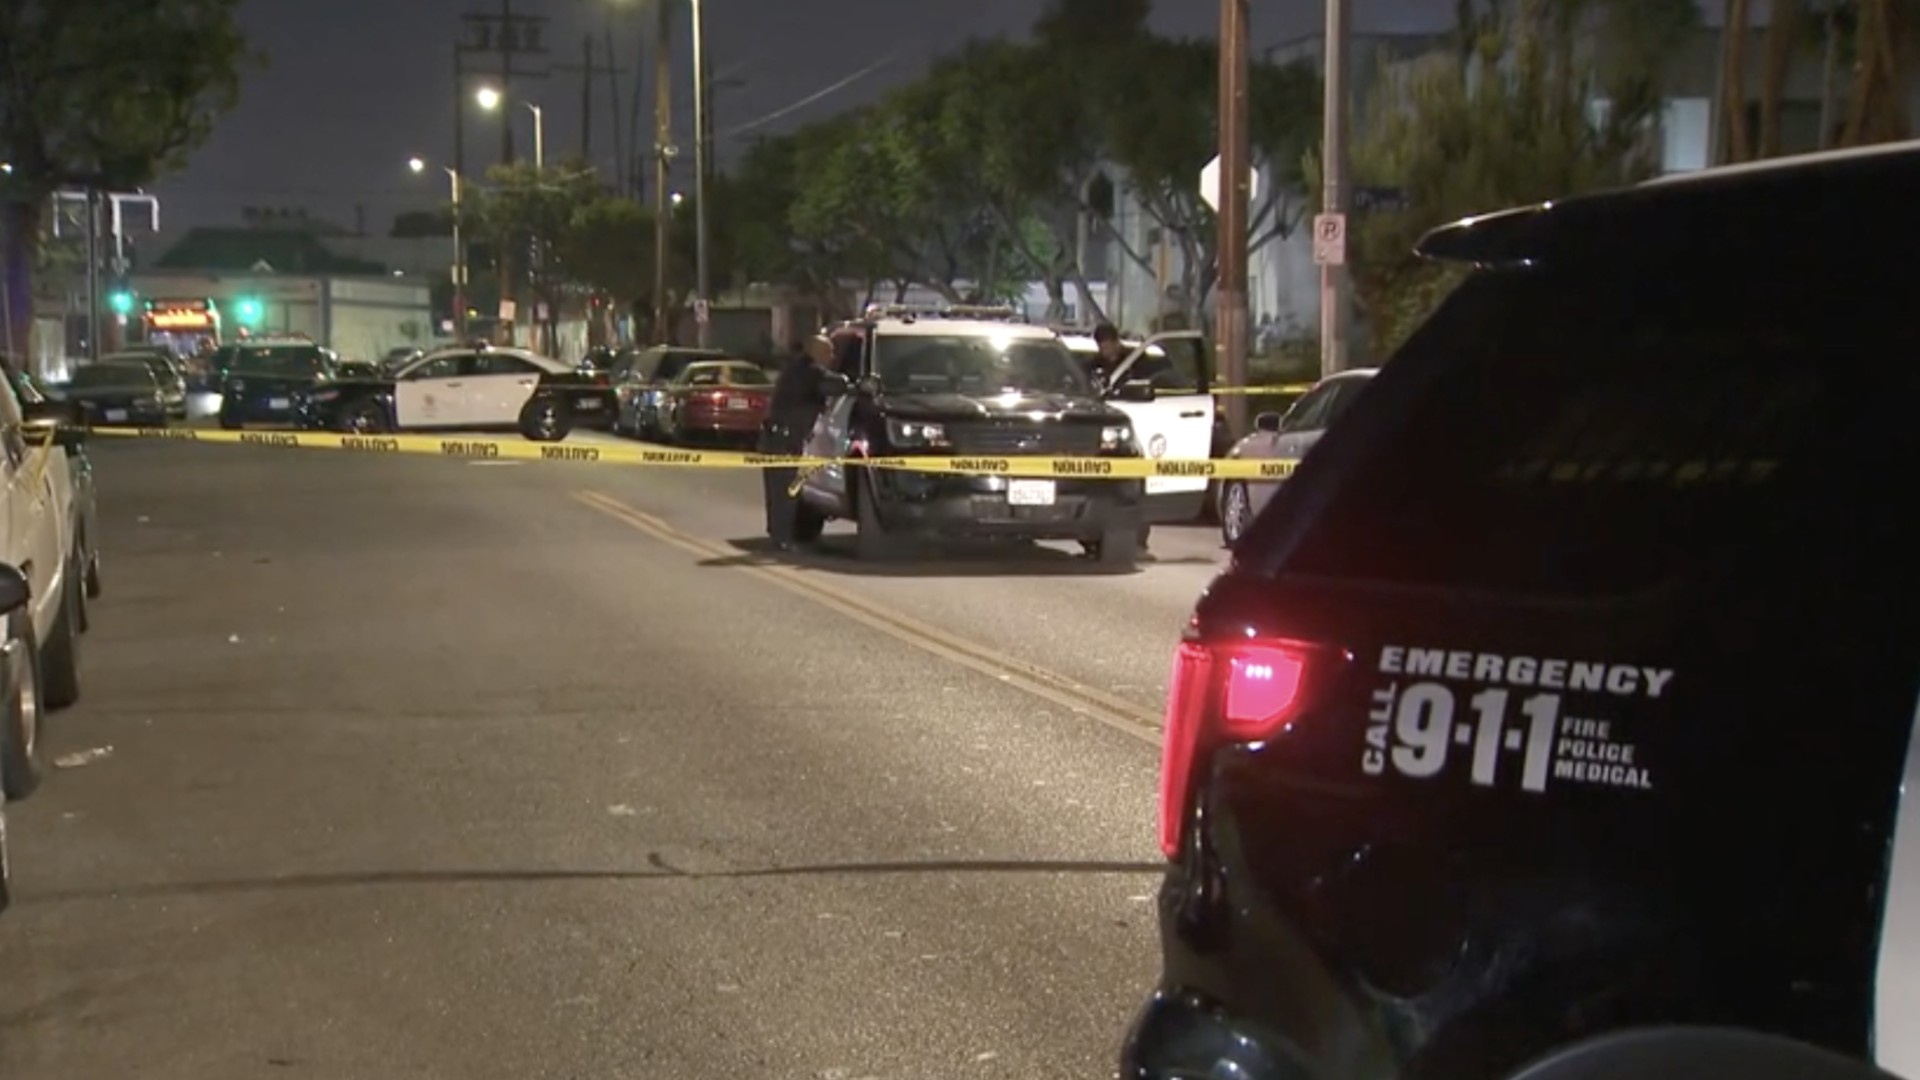 Los Angeles police investigate a triple shooting that left one person dead on June 16, 2021. (KTLA)